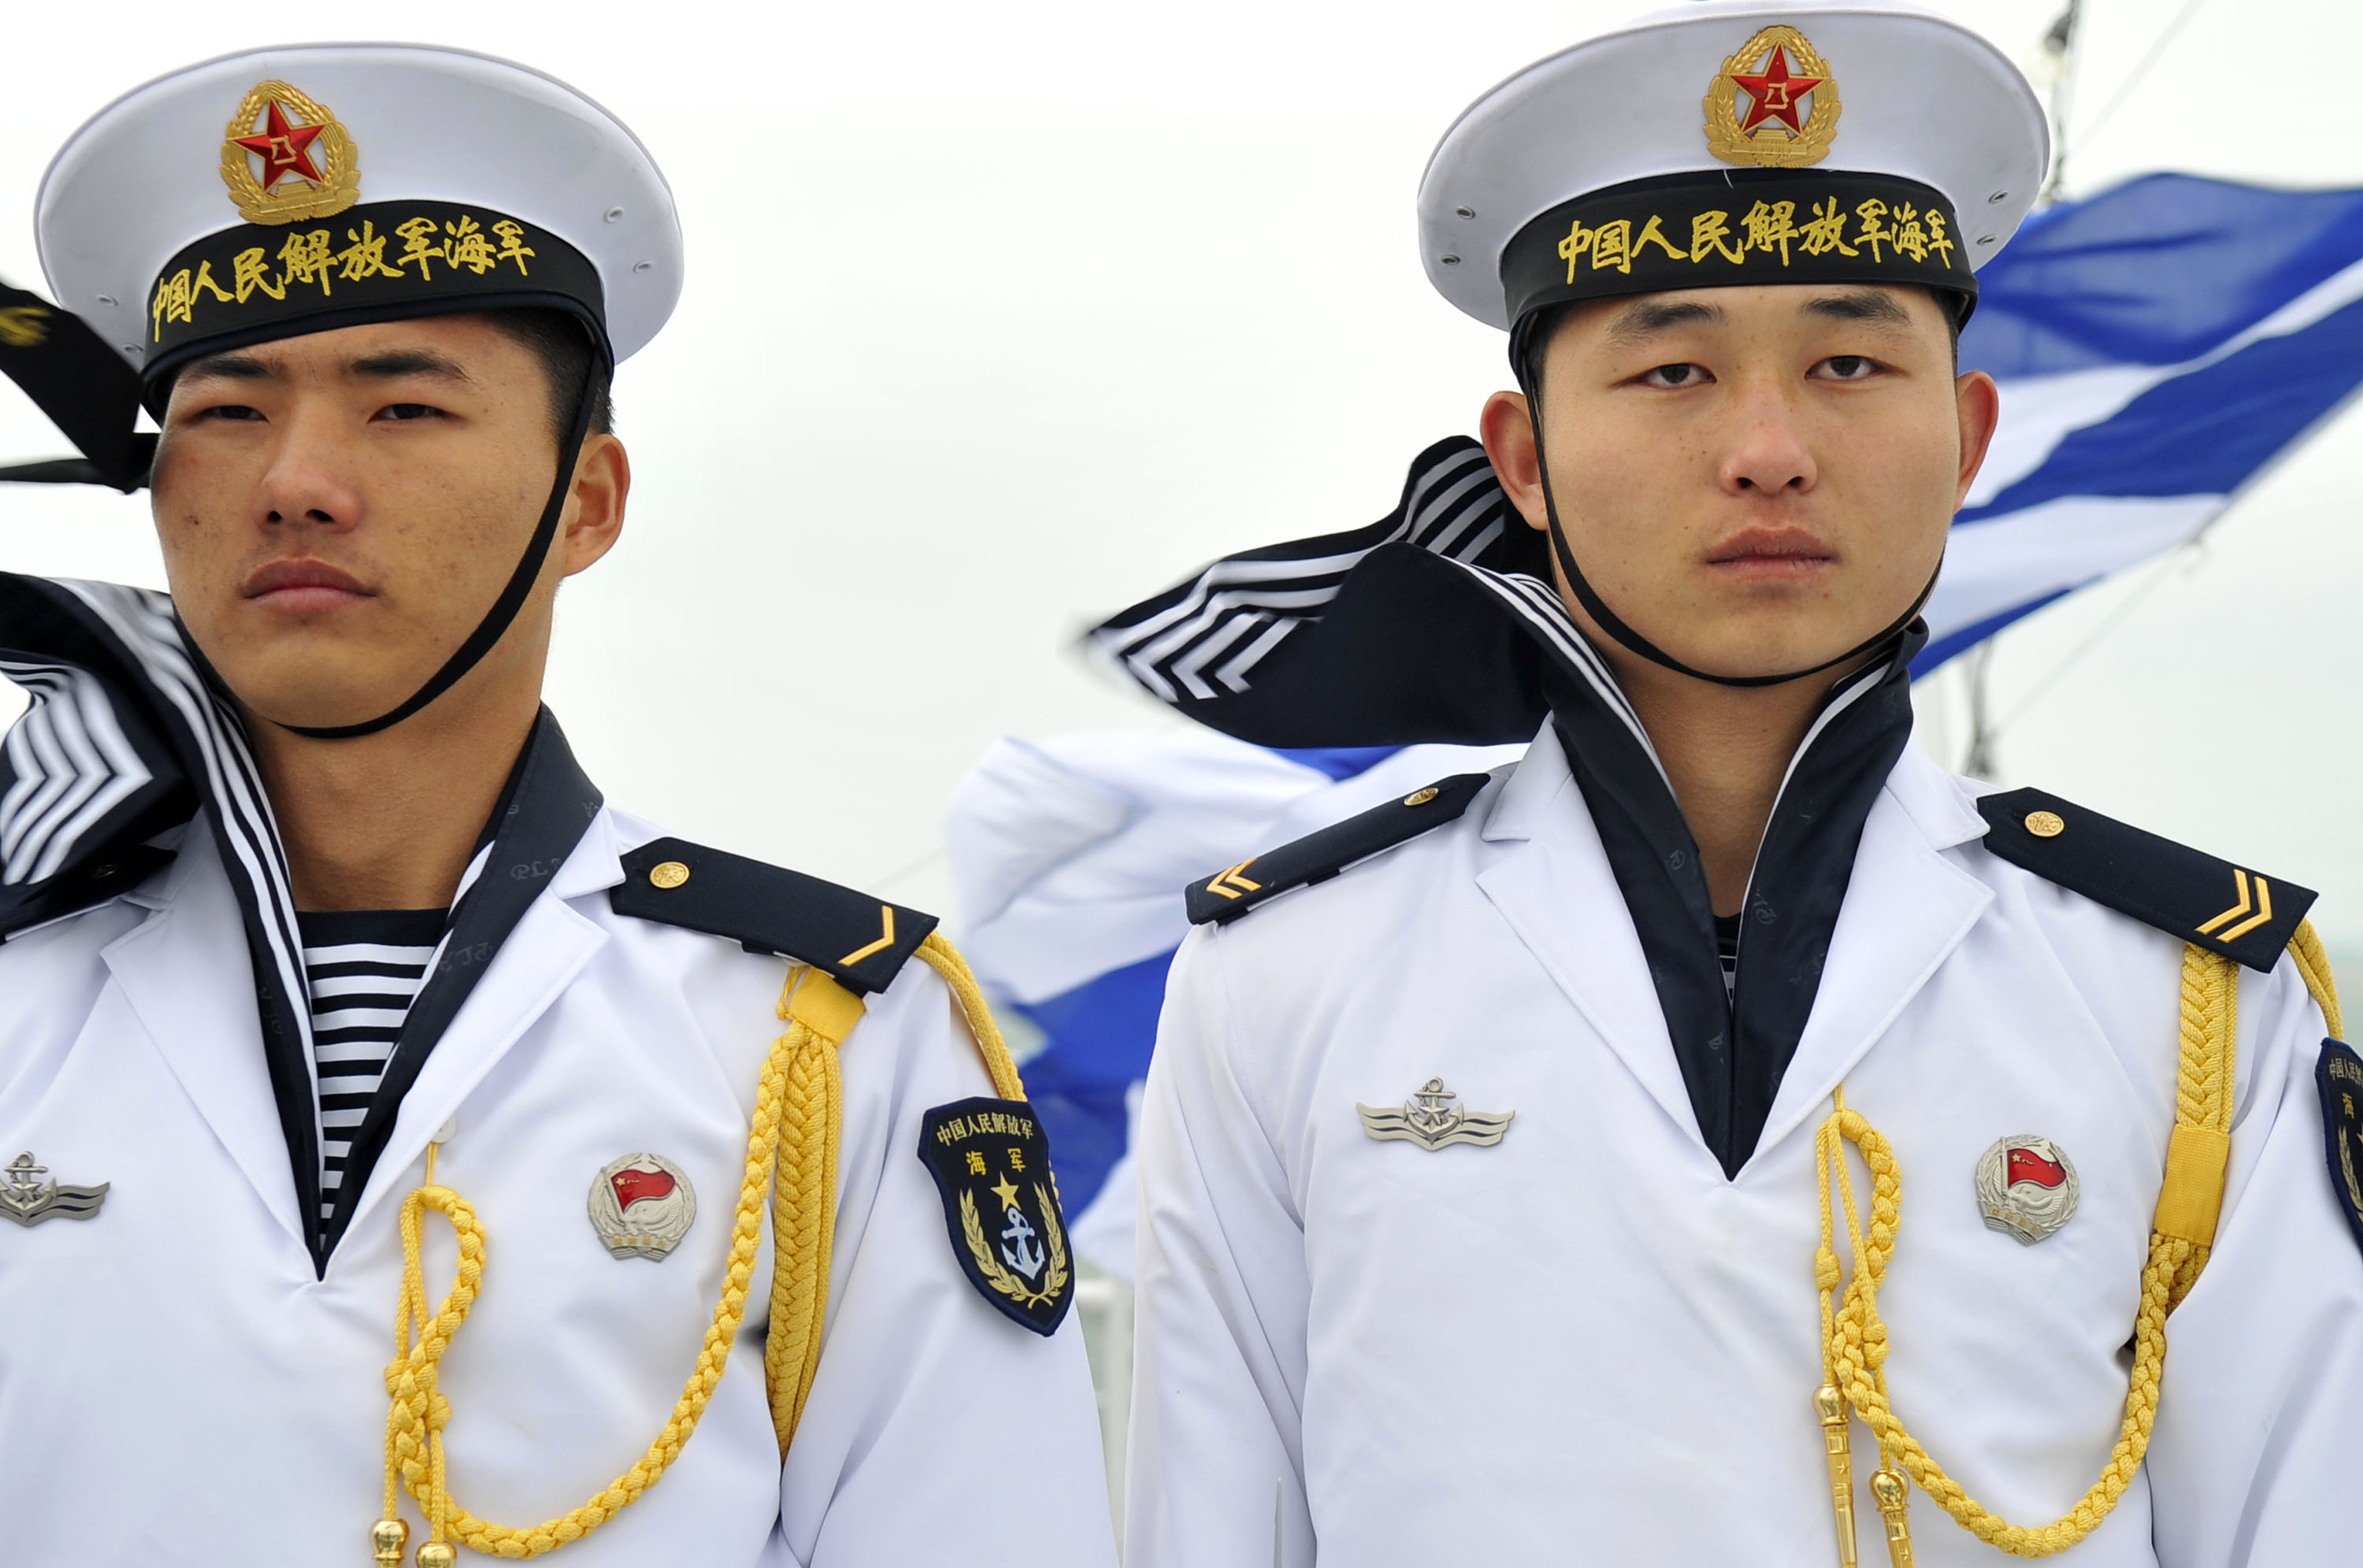 Chinese sailors qingdao